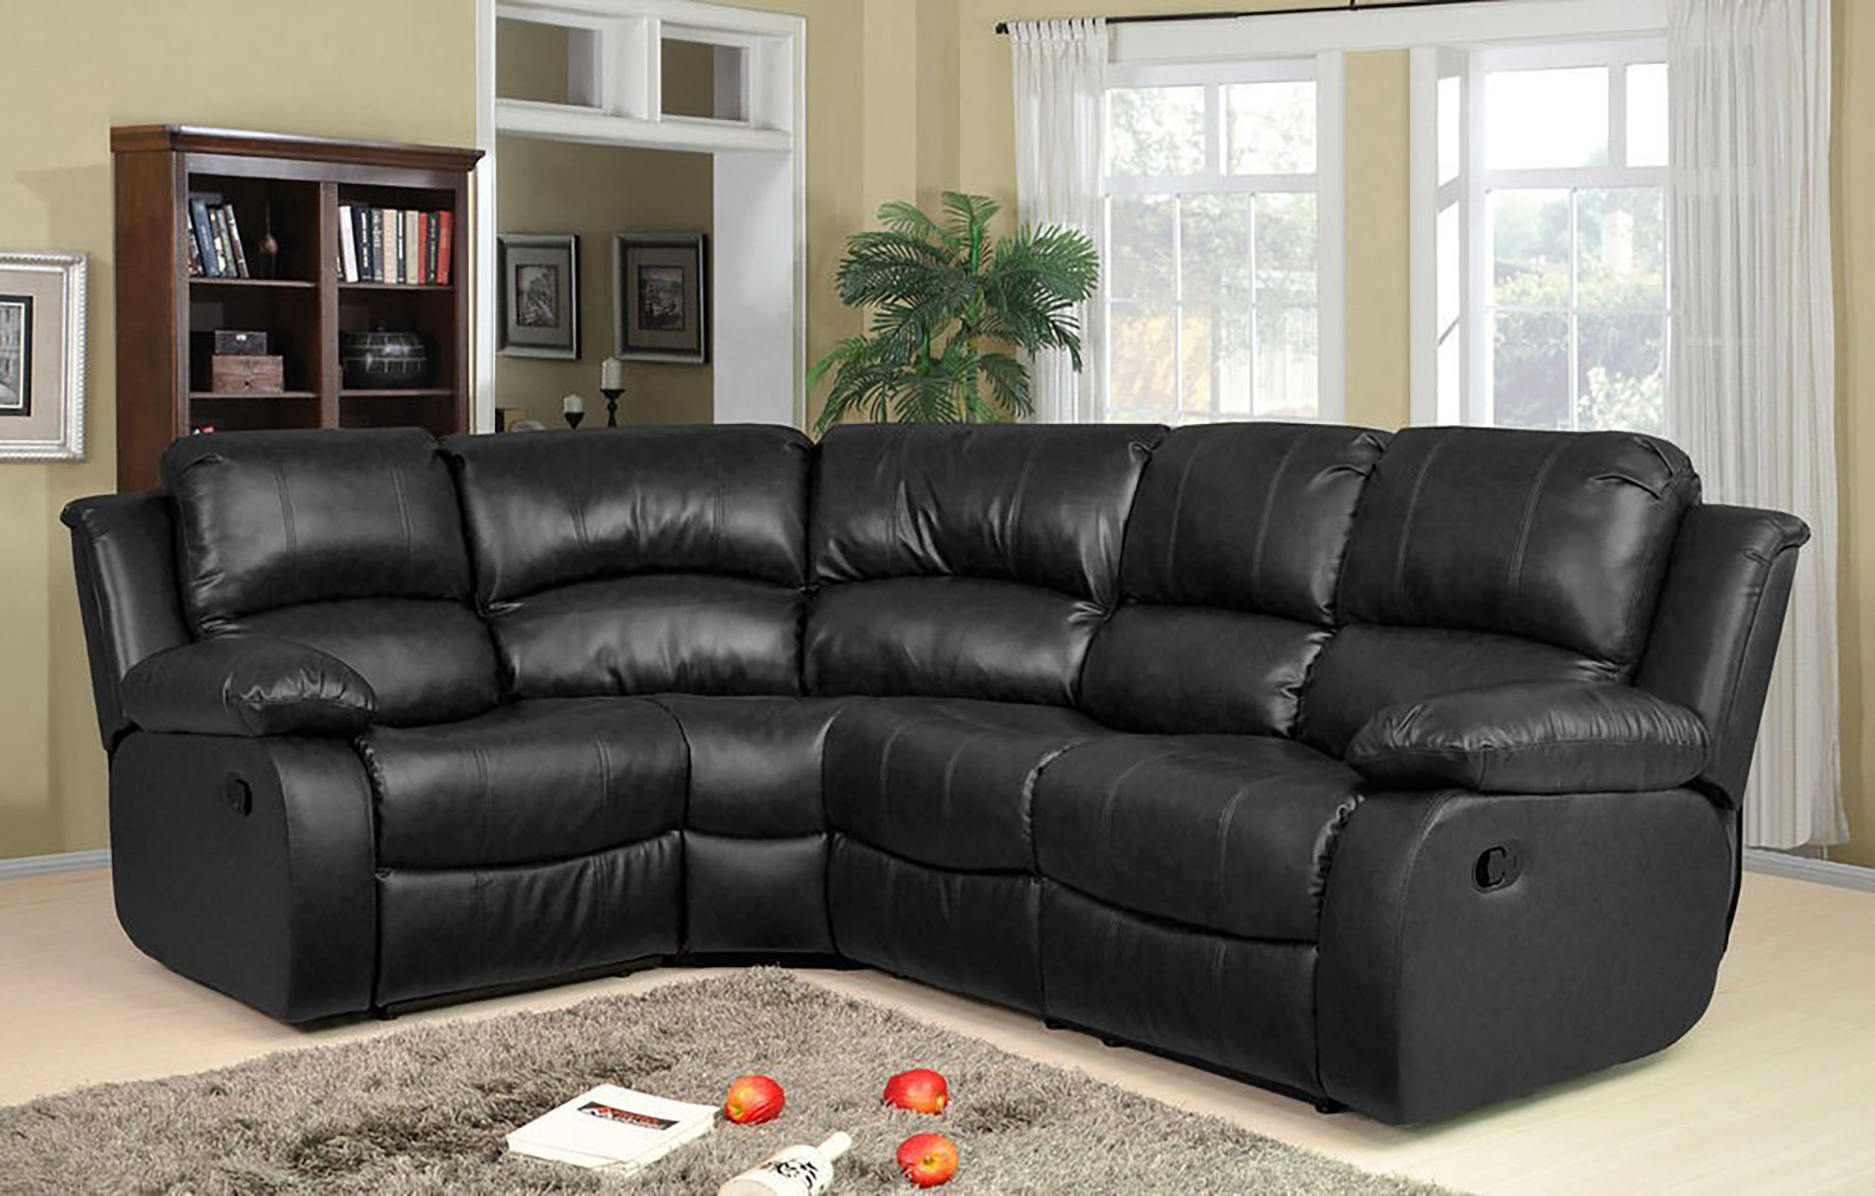 Valencia 1C2 Bonded Leather Recliner Corner Sofa Suite Intended For Leather Corner Sofas (View 13 of 15)